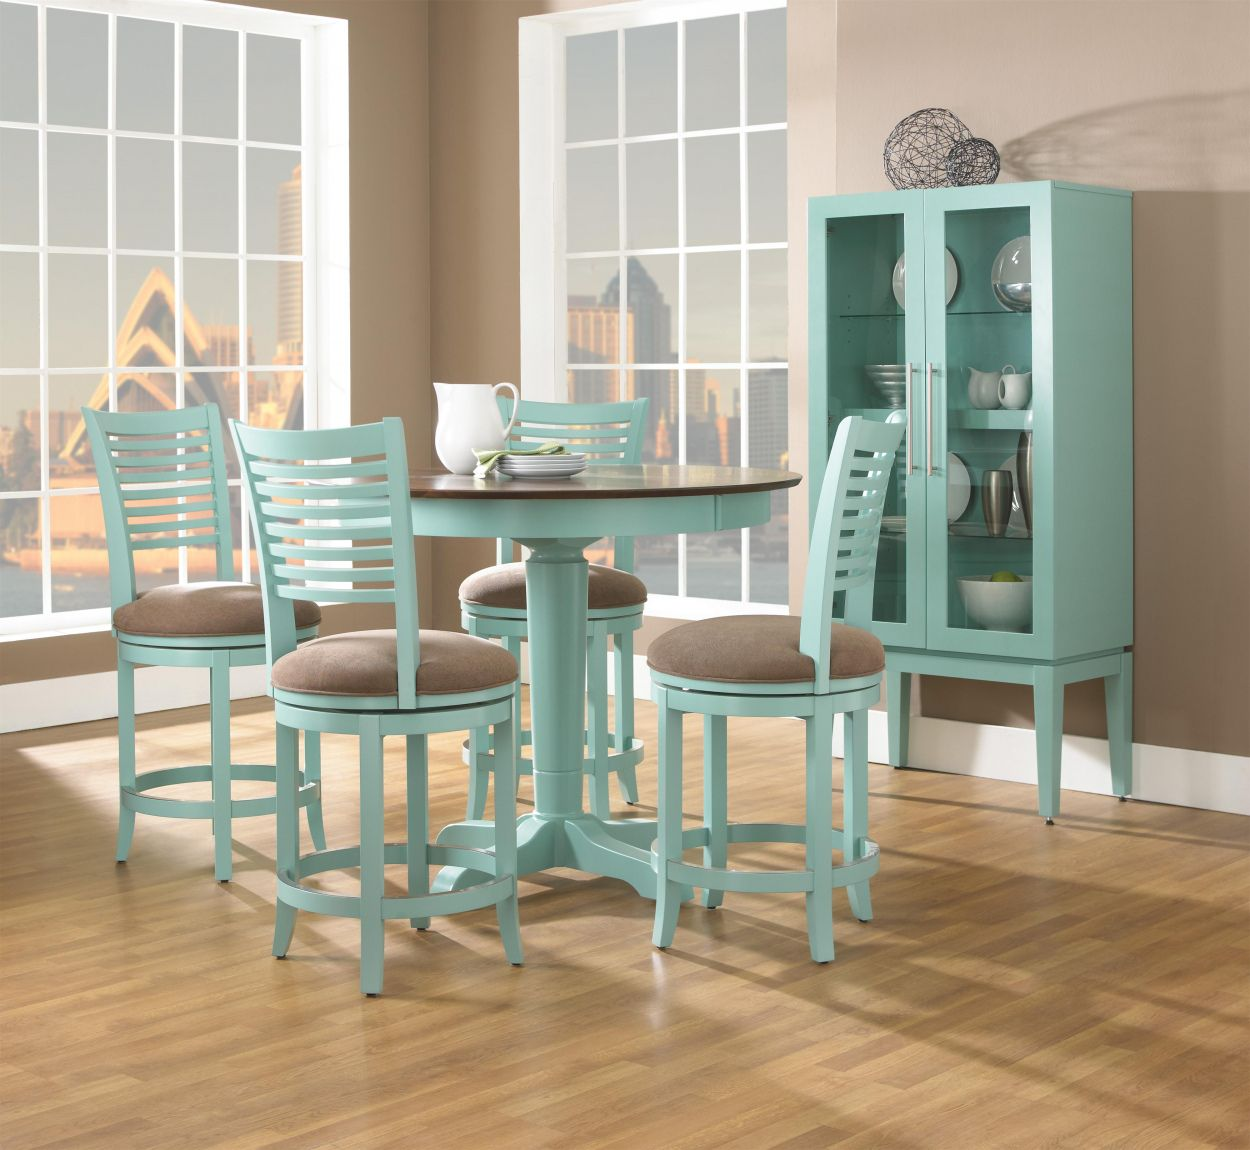 Sunshine Furniture Vero Beach Best Paint to Paint Furniture Check